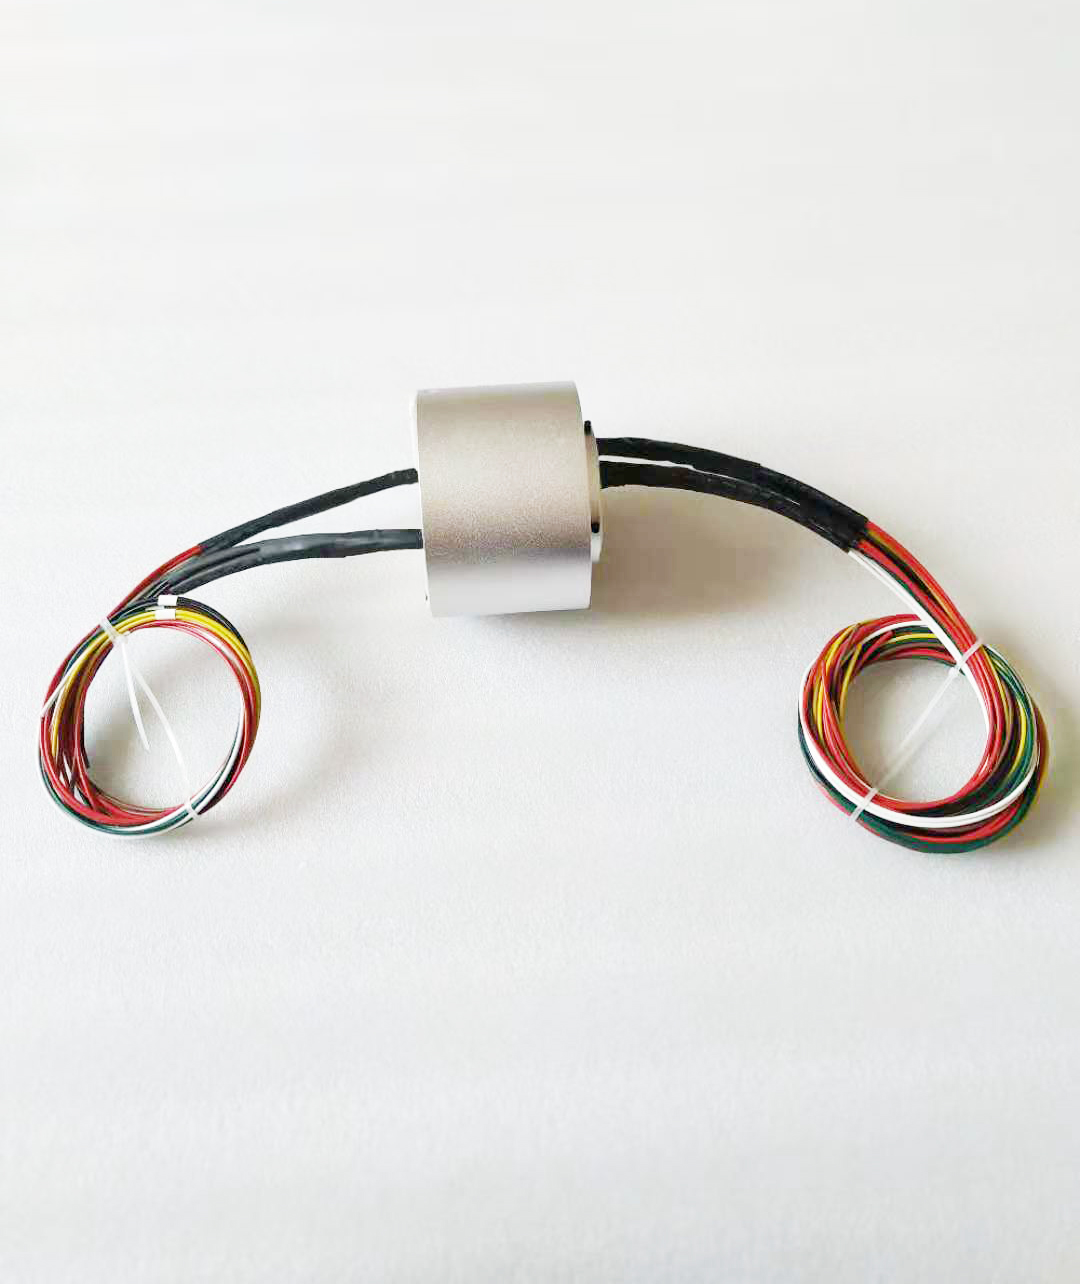 Electric slip ring DHK050-7-30A (1.75kg)